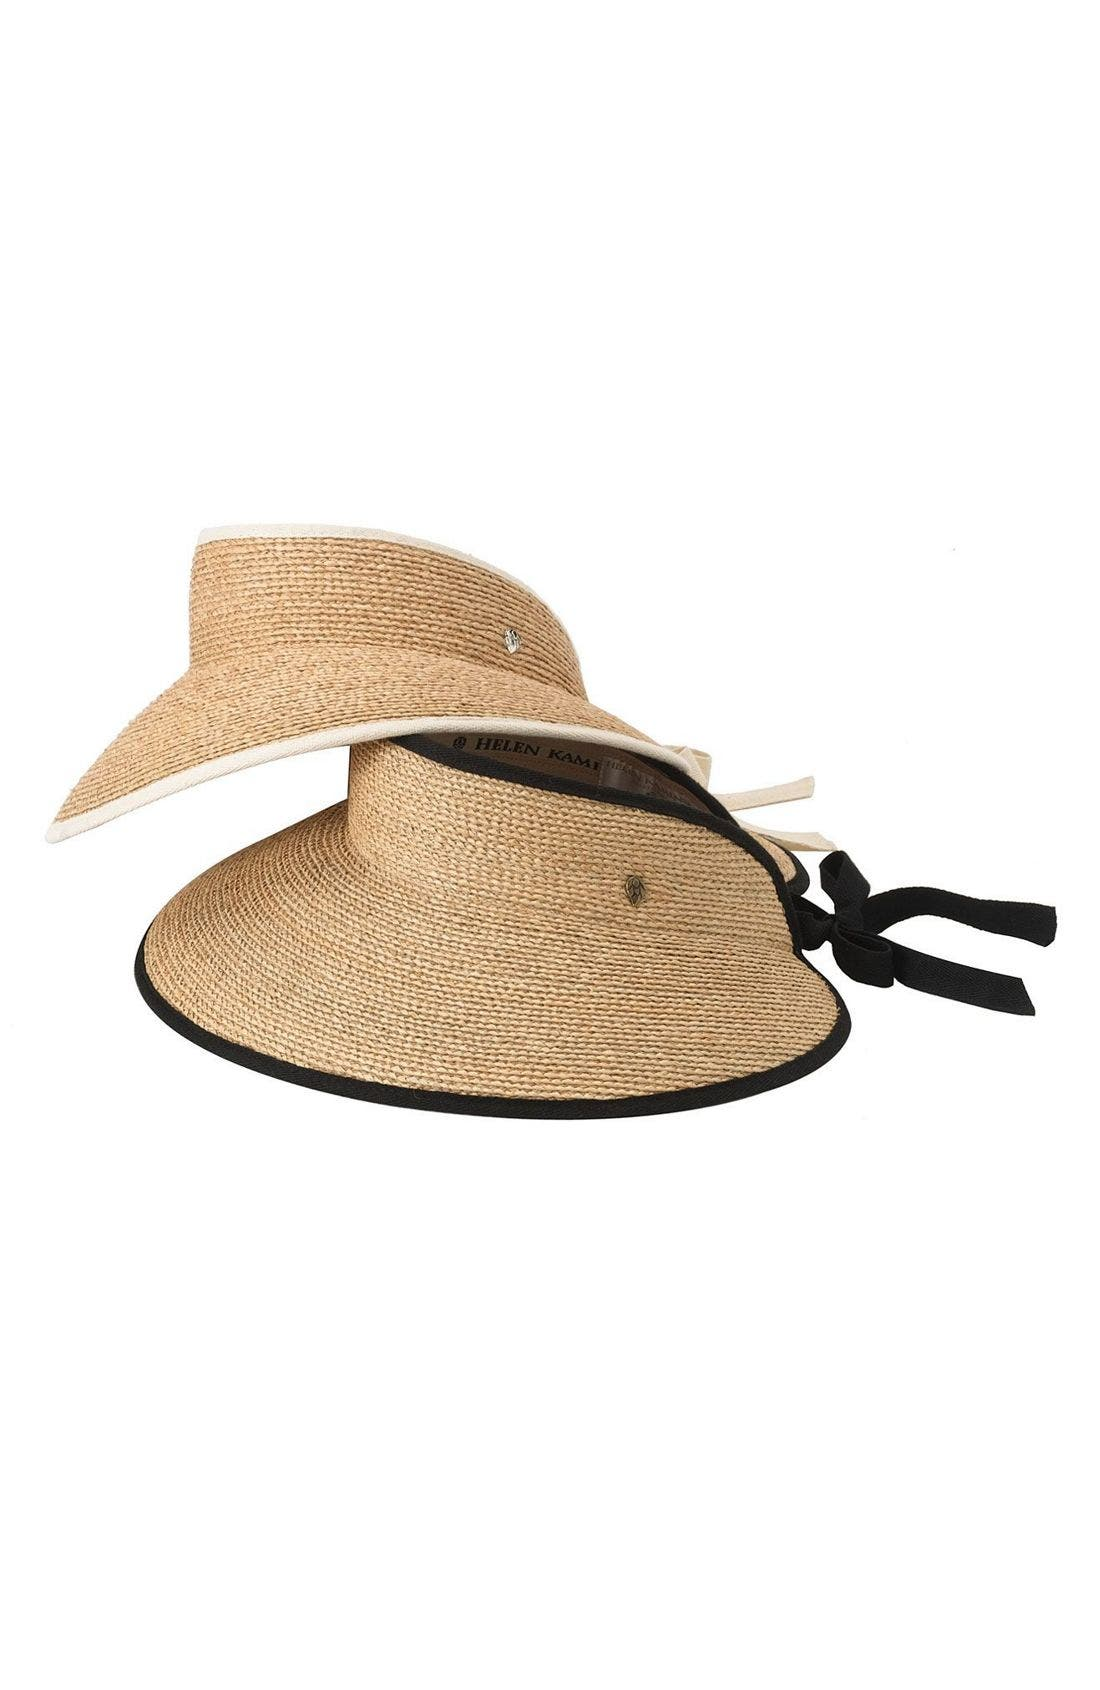 'Mita' Packable Raffia Visor,                             Alternate thumbnail 2, color,                             NATURAL/ MIDNIGHT